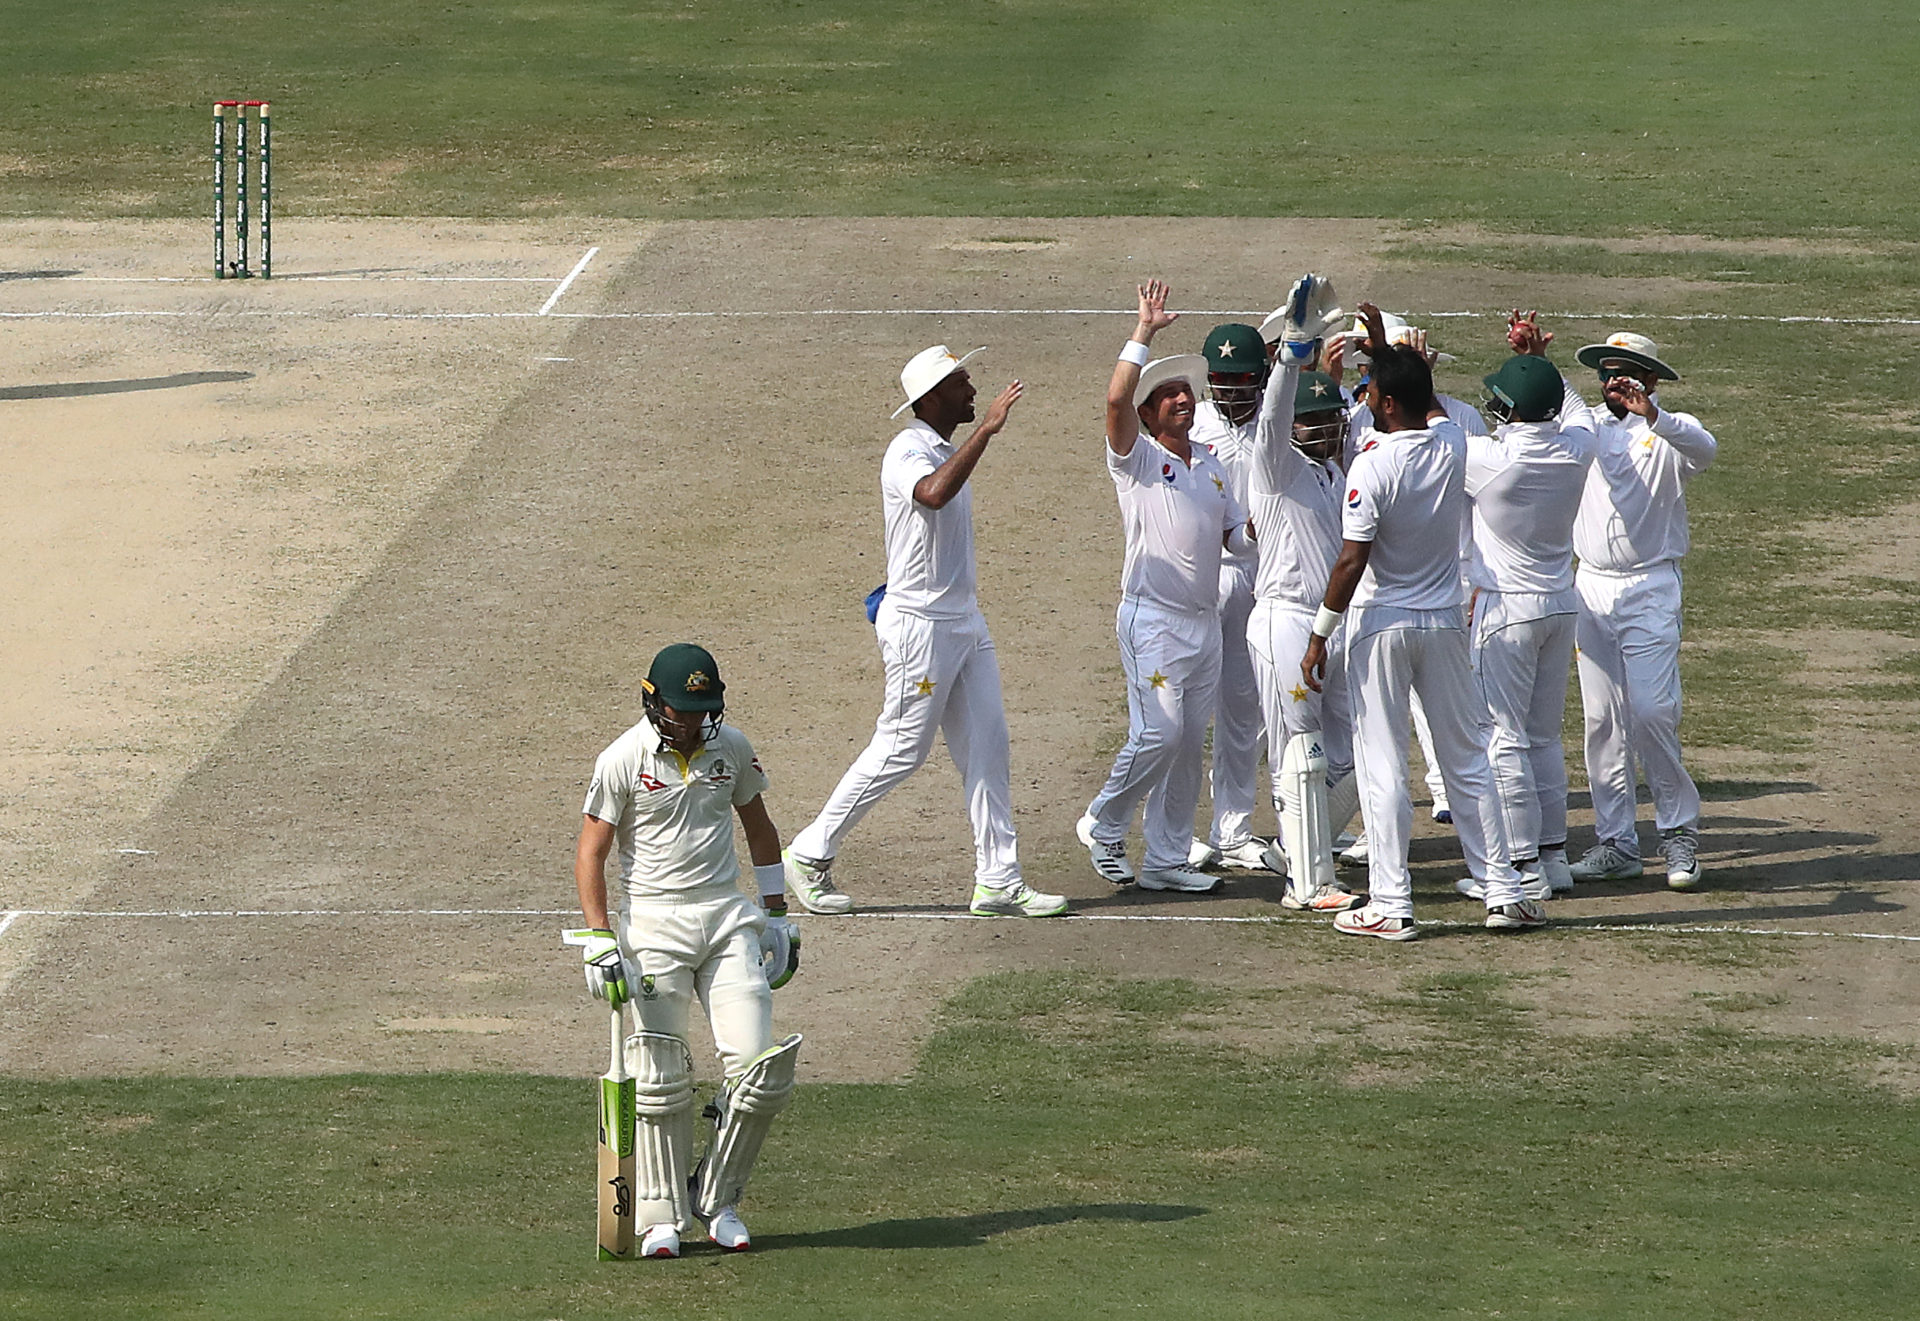 Australia to chase 462 runs as Pakistan declare innings